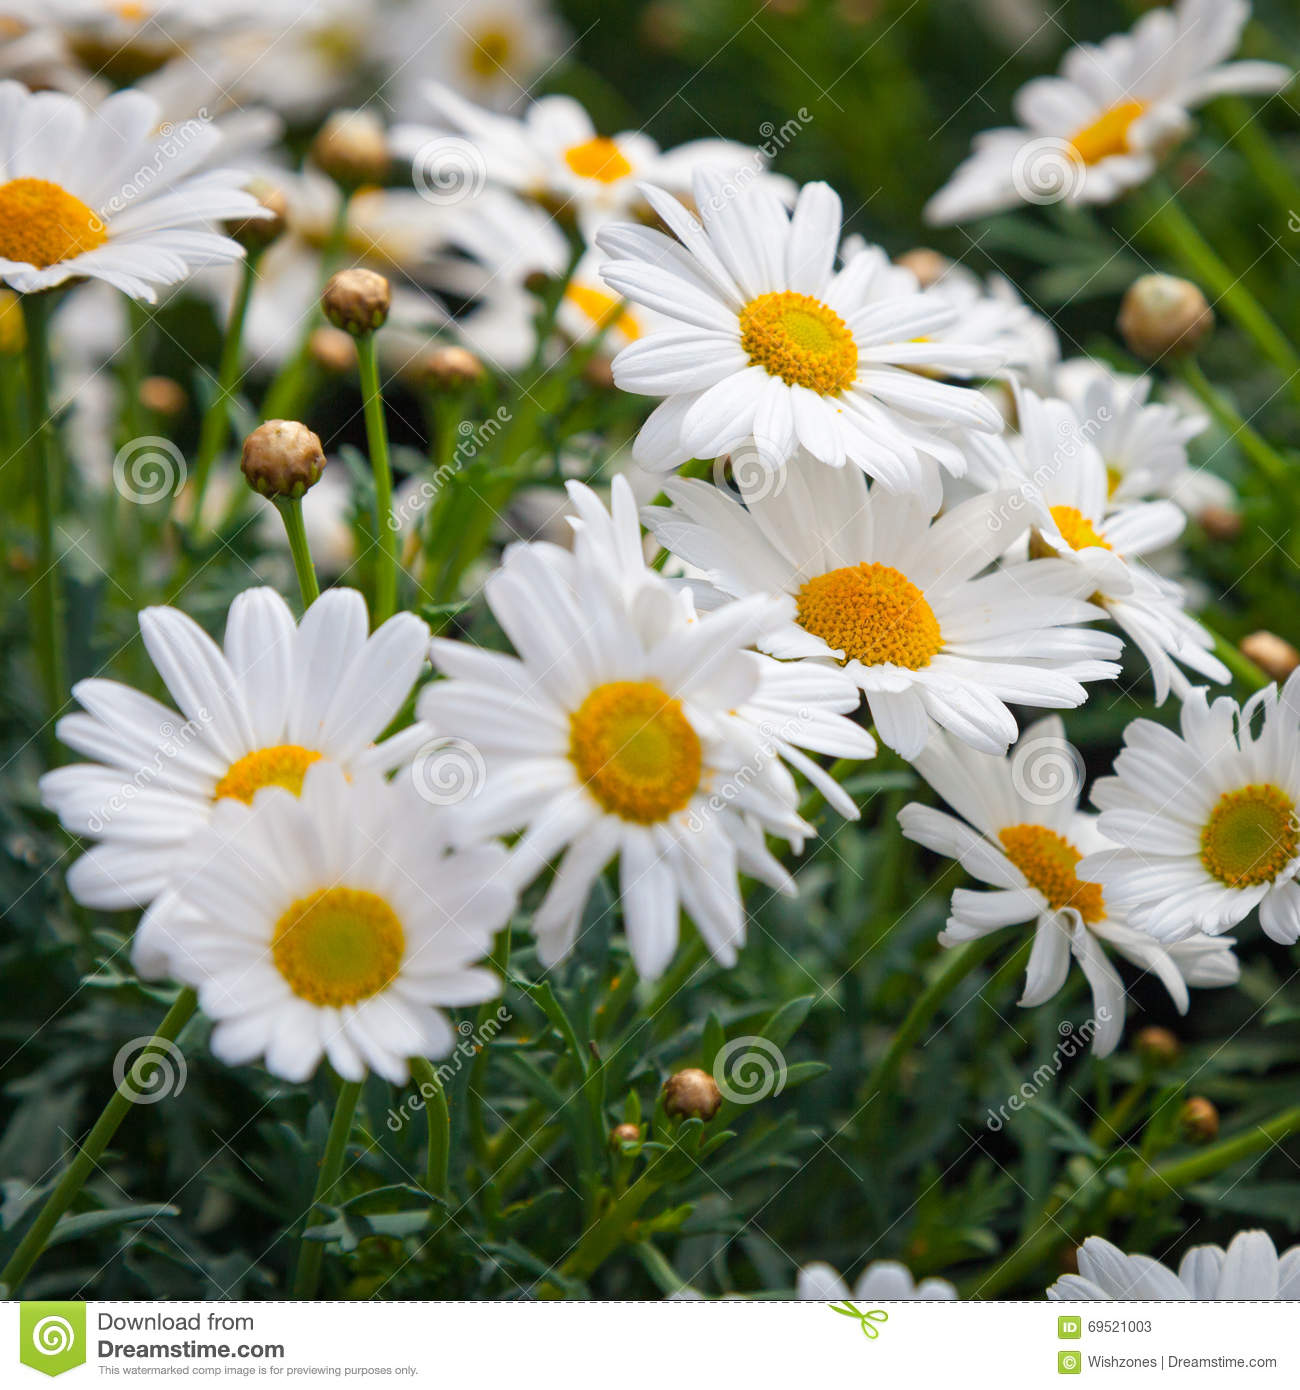 Bush of dog daisy flowers stock image image of daisy 69521003 bush of dog daisy flowers izmirmasajfo Image collections